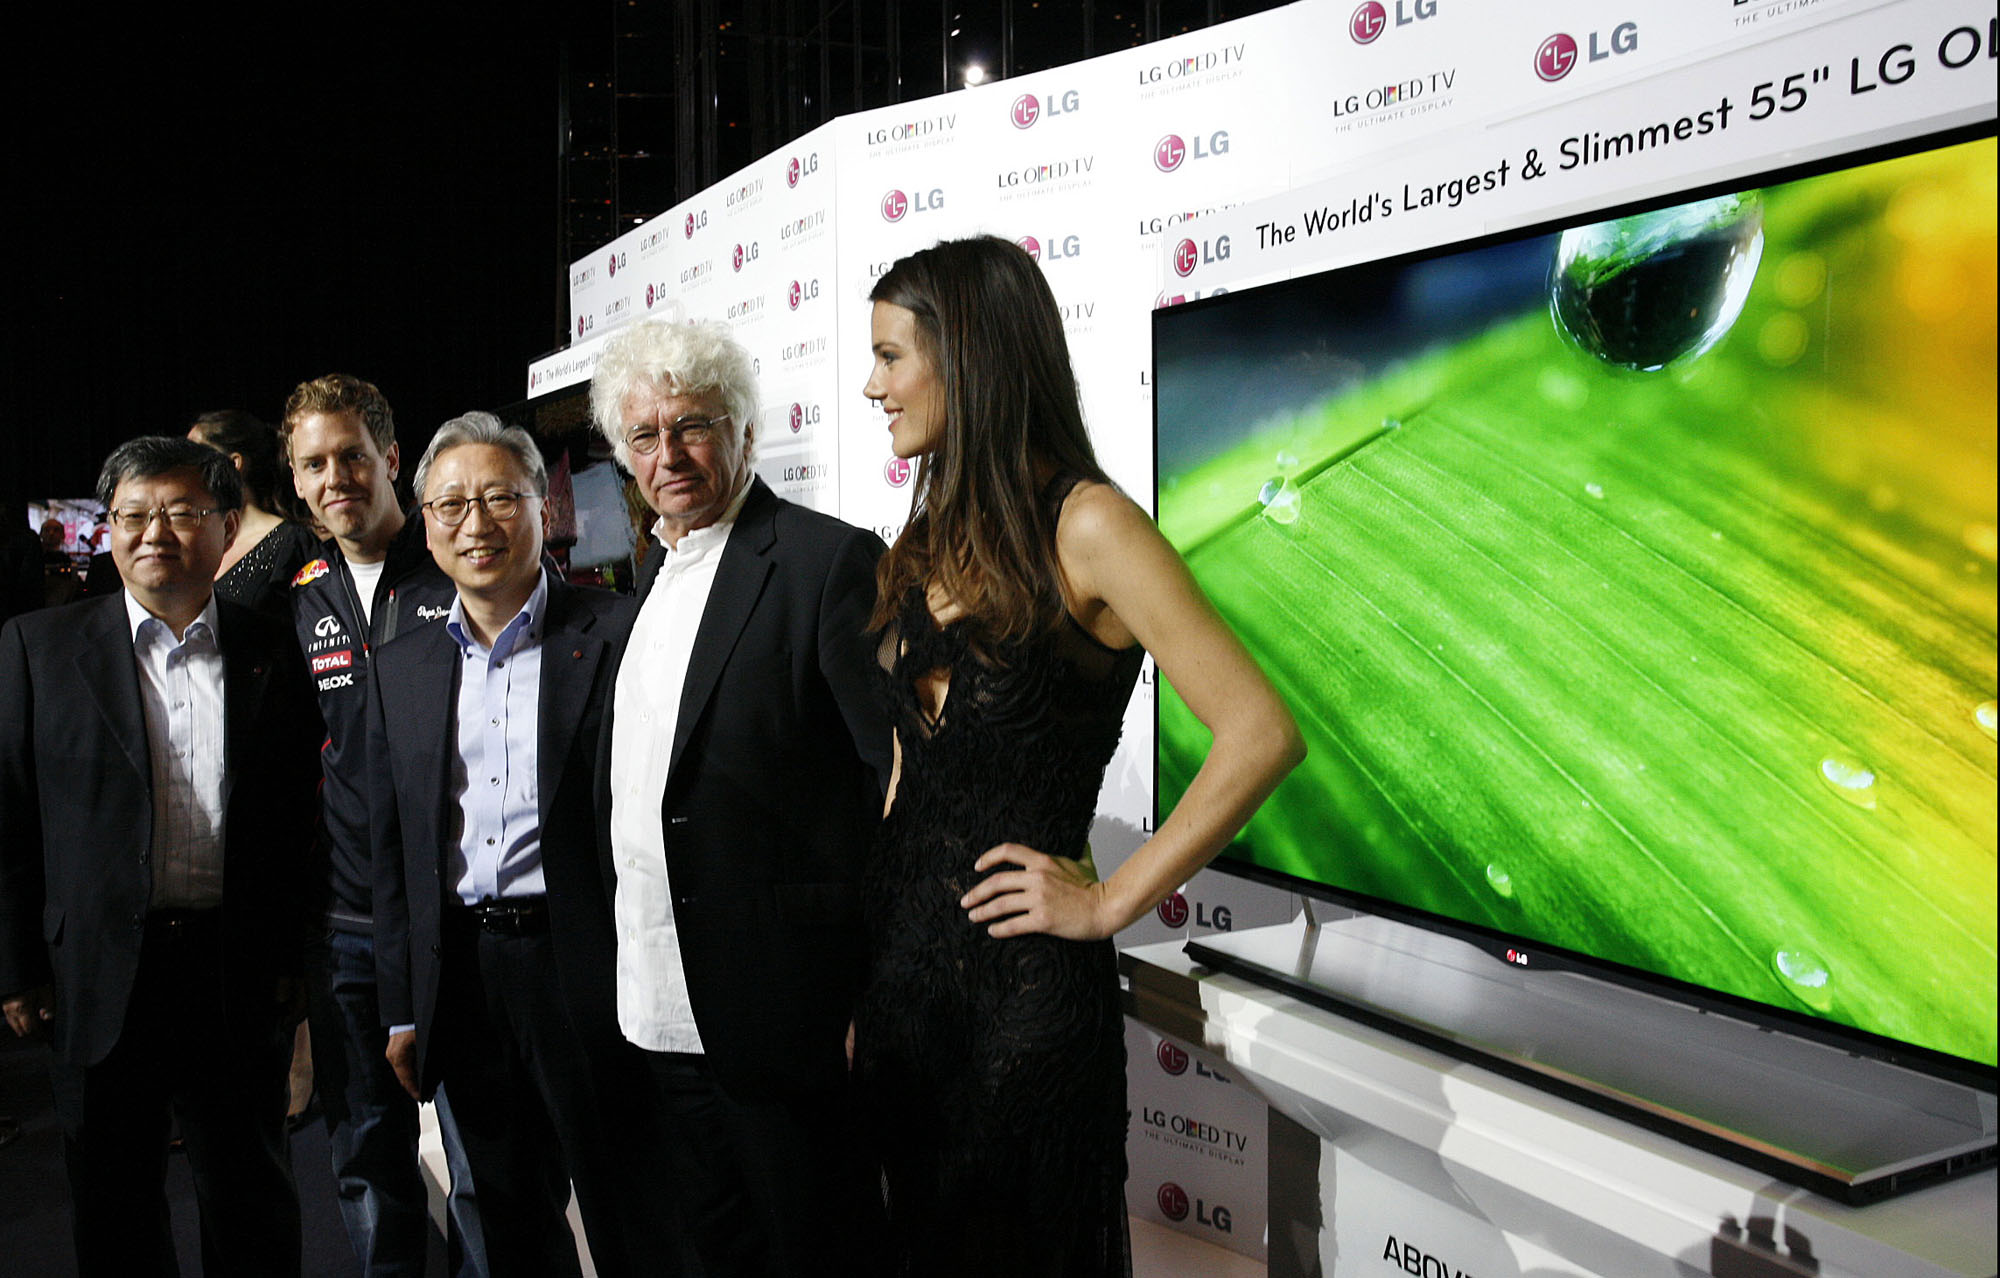 From left to right: LG's vice president of Overseas TV Sales and Marketing Ki-il Kwon, F1 Champion Sebastian Vettel, LG Europe Head Stanley Cho, film director Jean-Jacques Annaud and model Gemma Sanderson pose in front of LG's 55-inch OLED TV in Monaco.